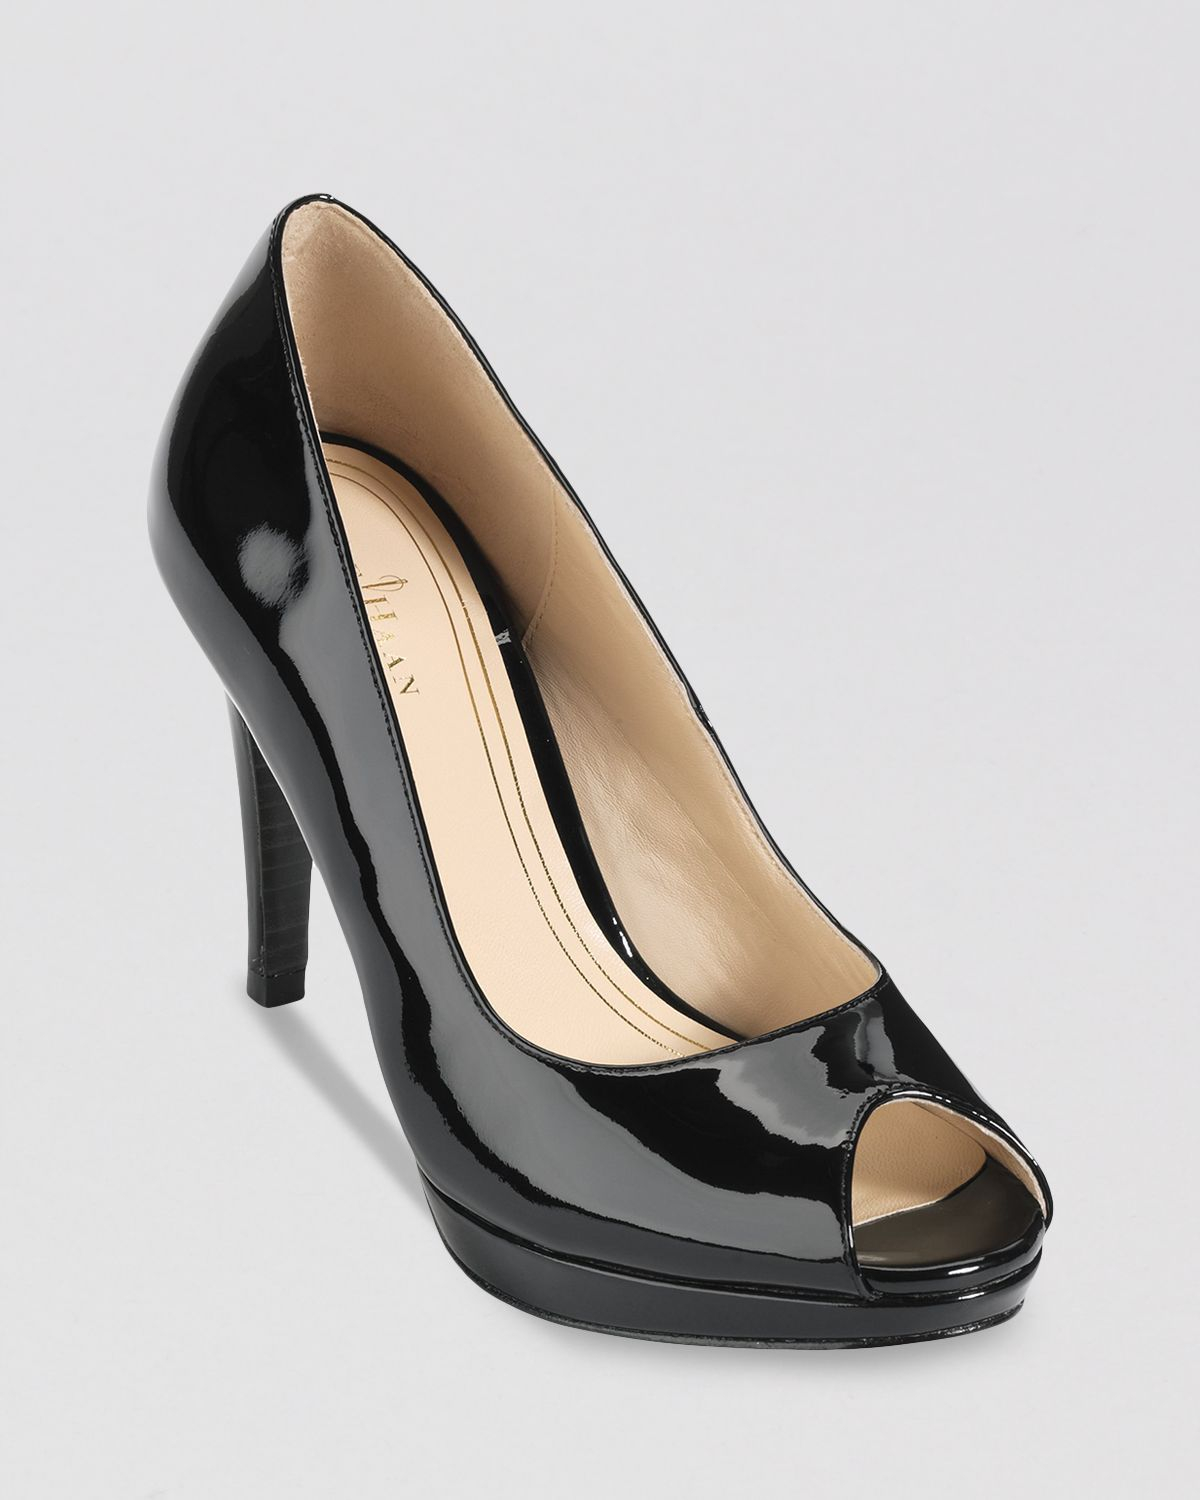 d73c08e1aec7 Lyst - Cole Haan Peep Toe Platform Pumps Chelsea High Heel in Black